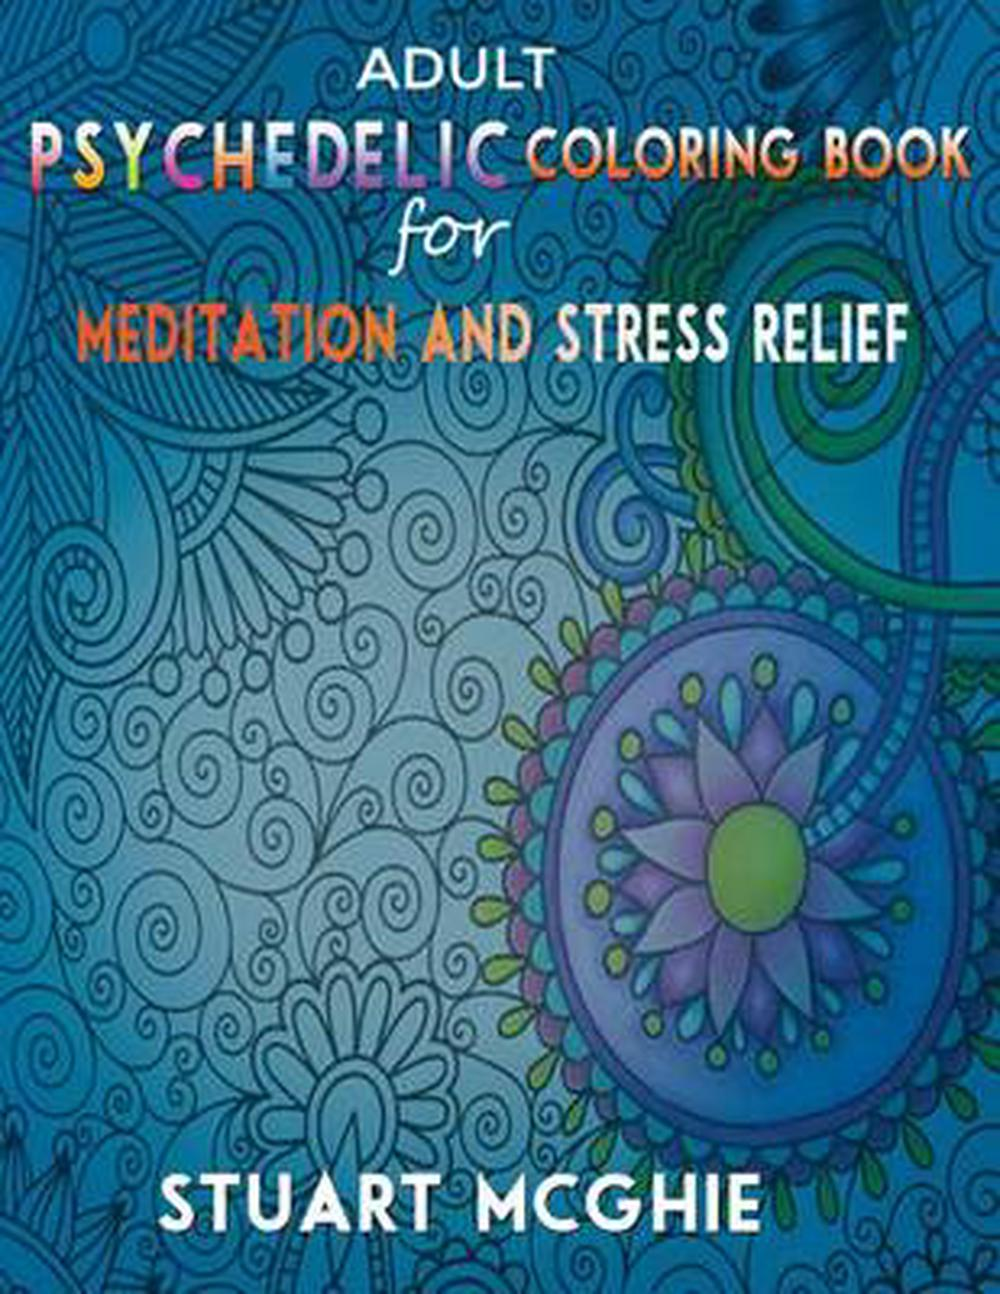 Details about Adult Psychedelic Coloring Book for Meditation and Stress  Relief: Adult Coloring